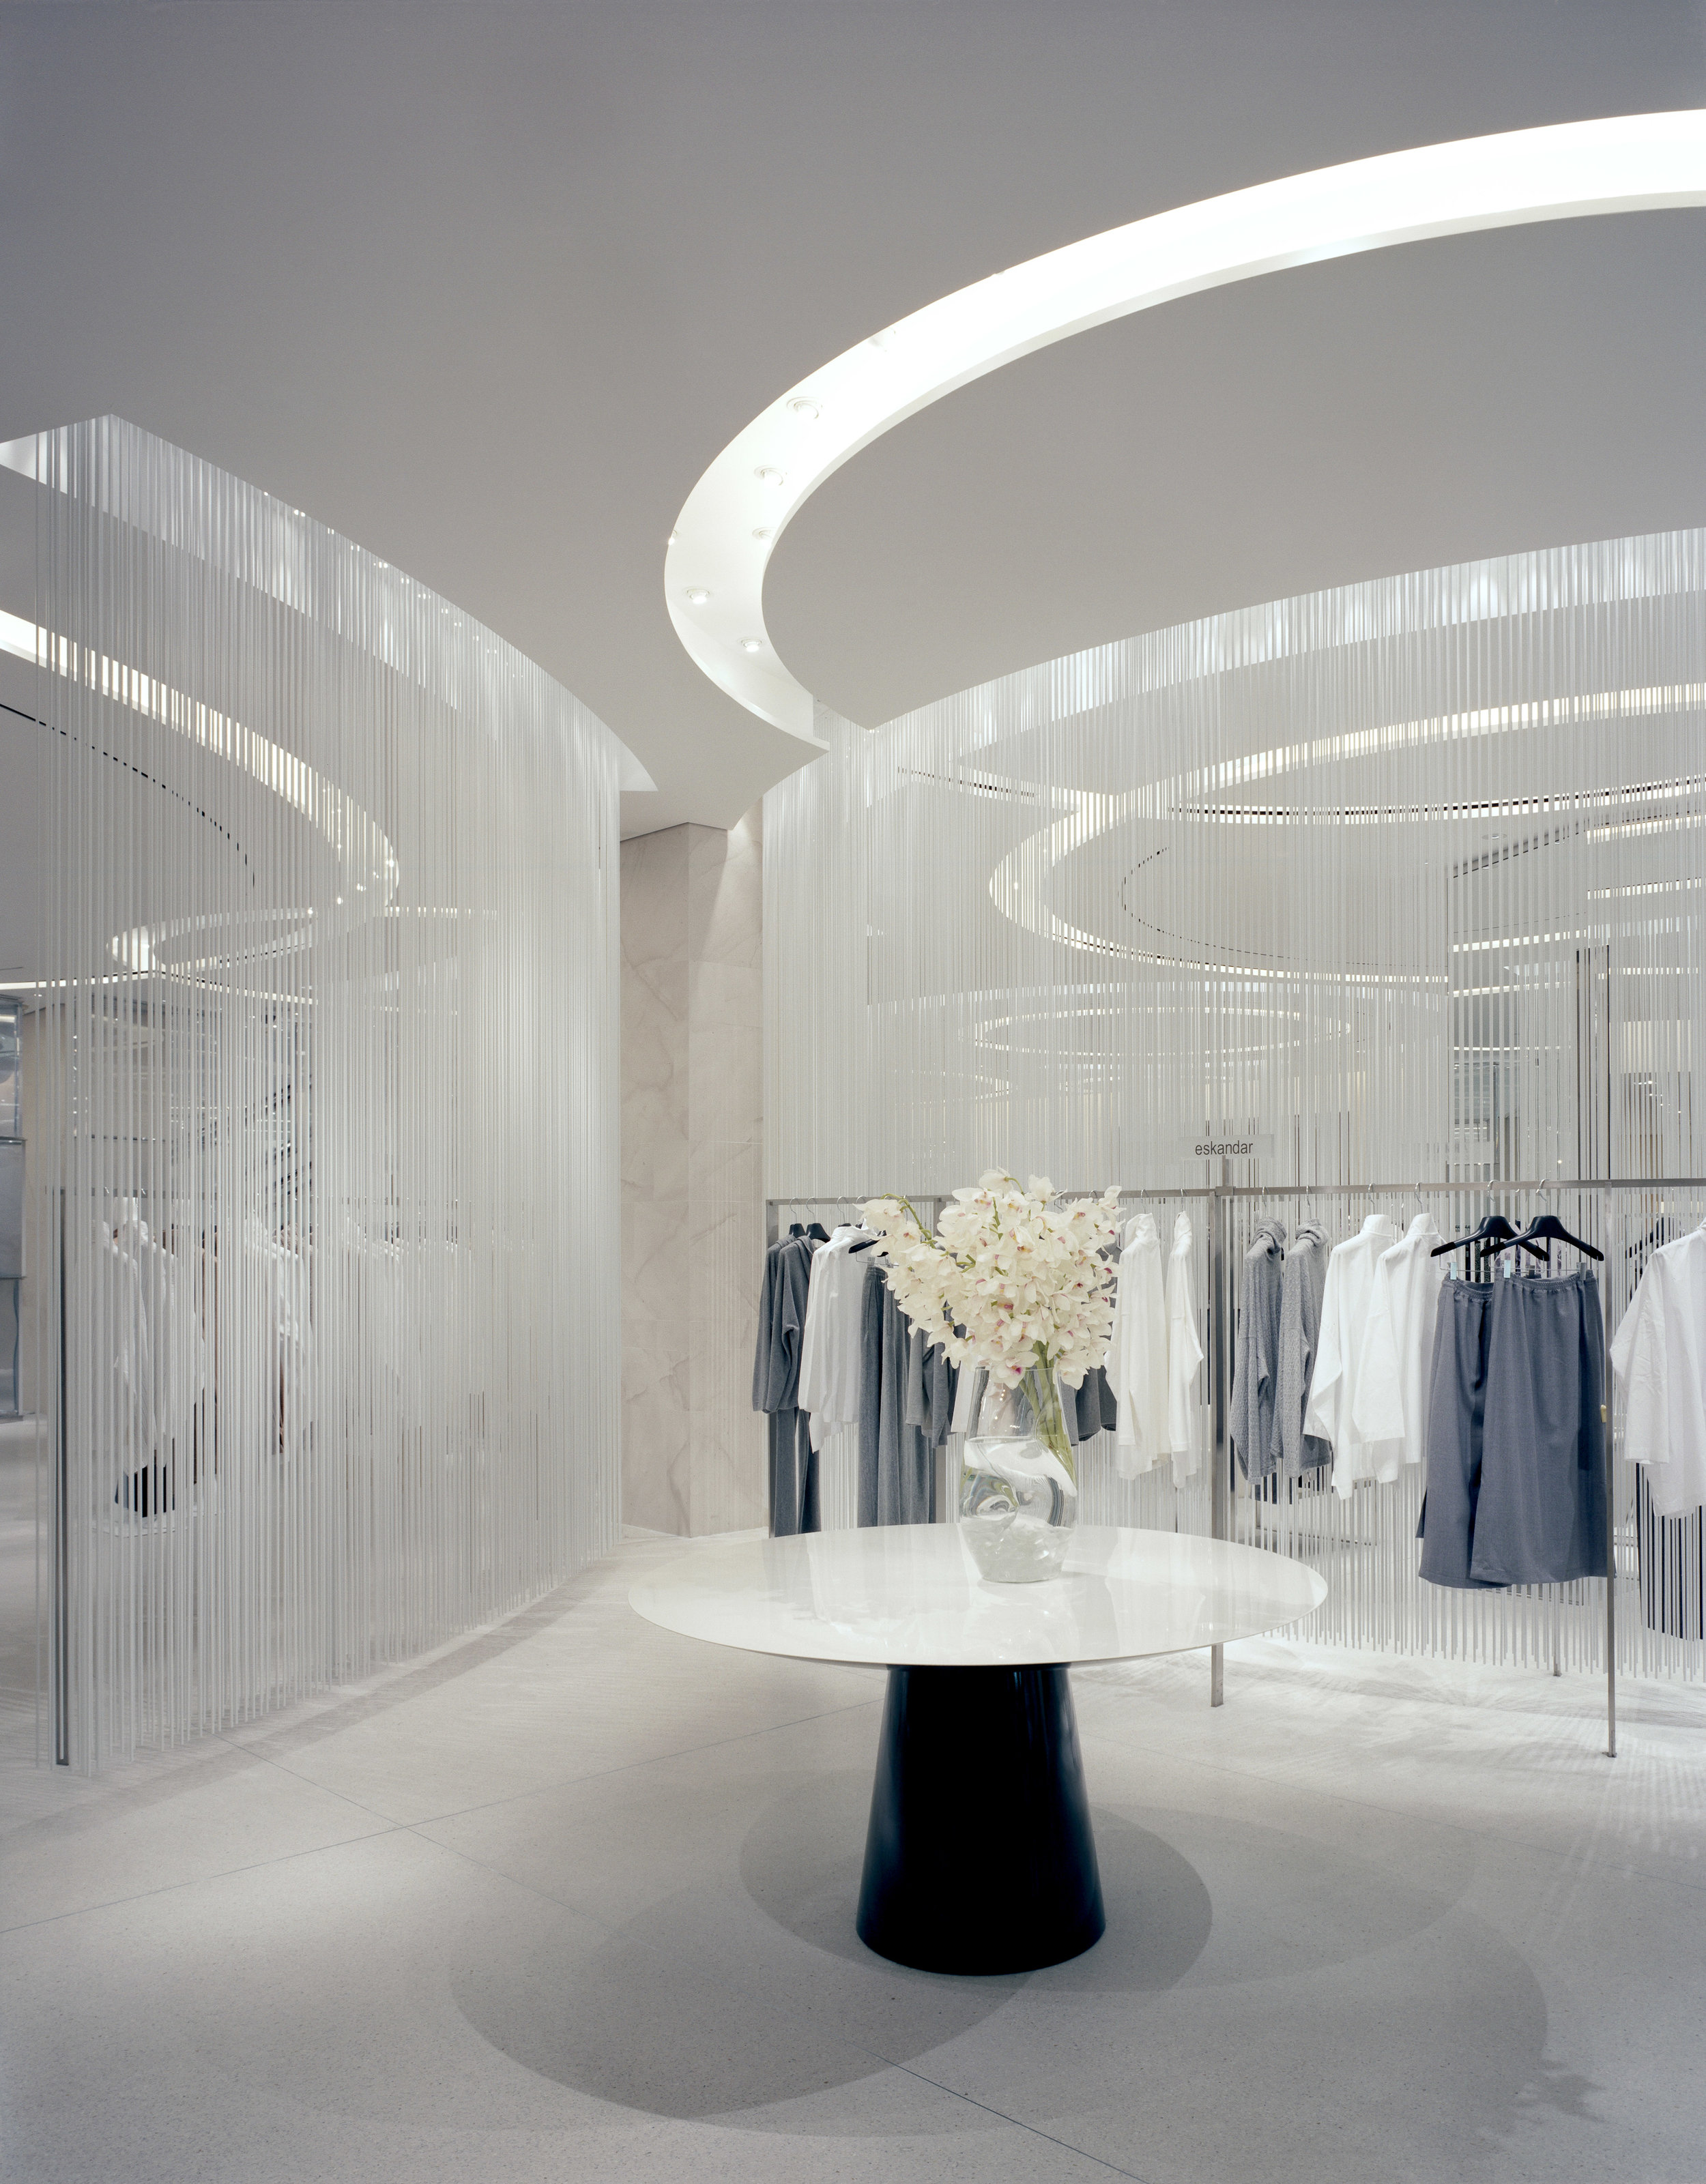 (Holt Renfrew, 50 Bloor St. W., Toronto. Photo:   Ben Rahn, A-Frame Studio  )